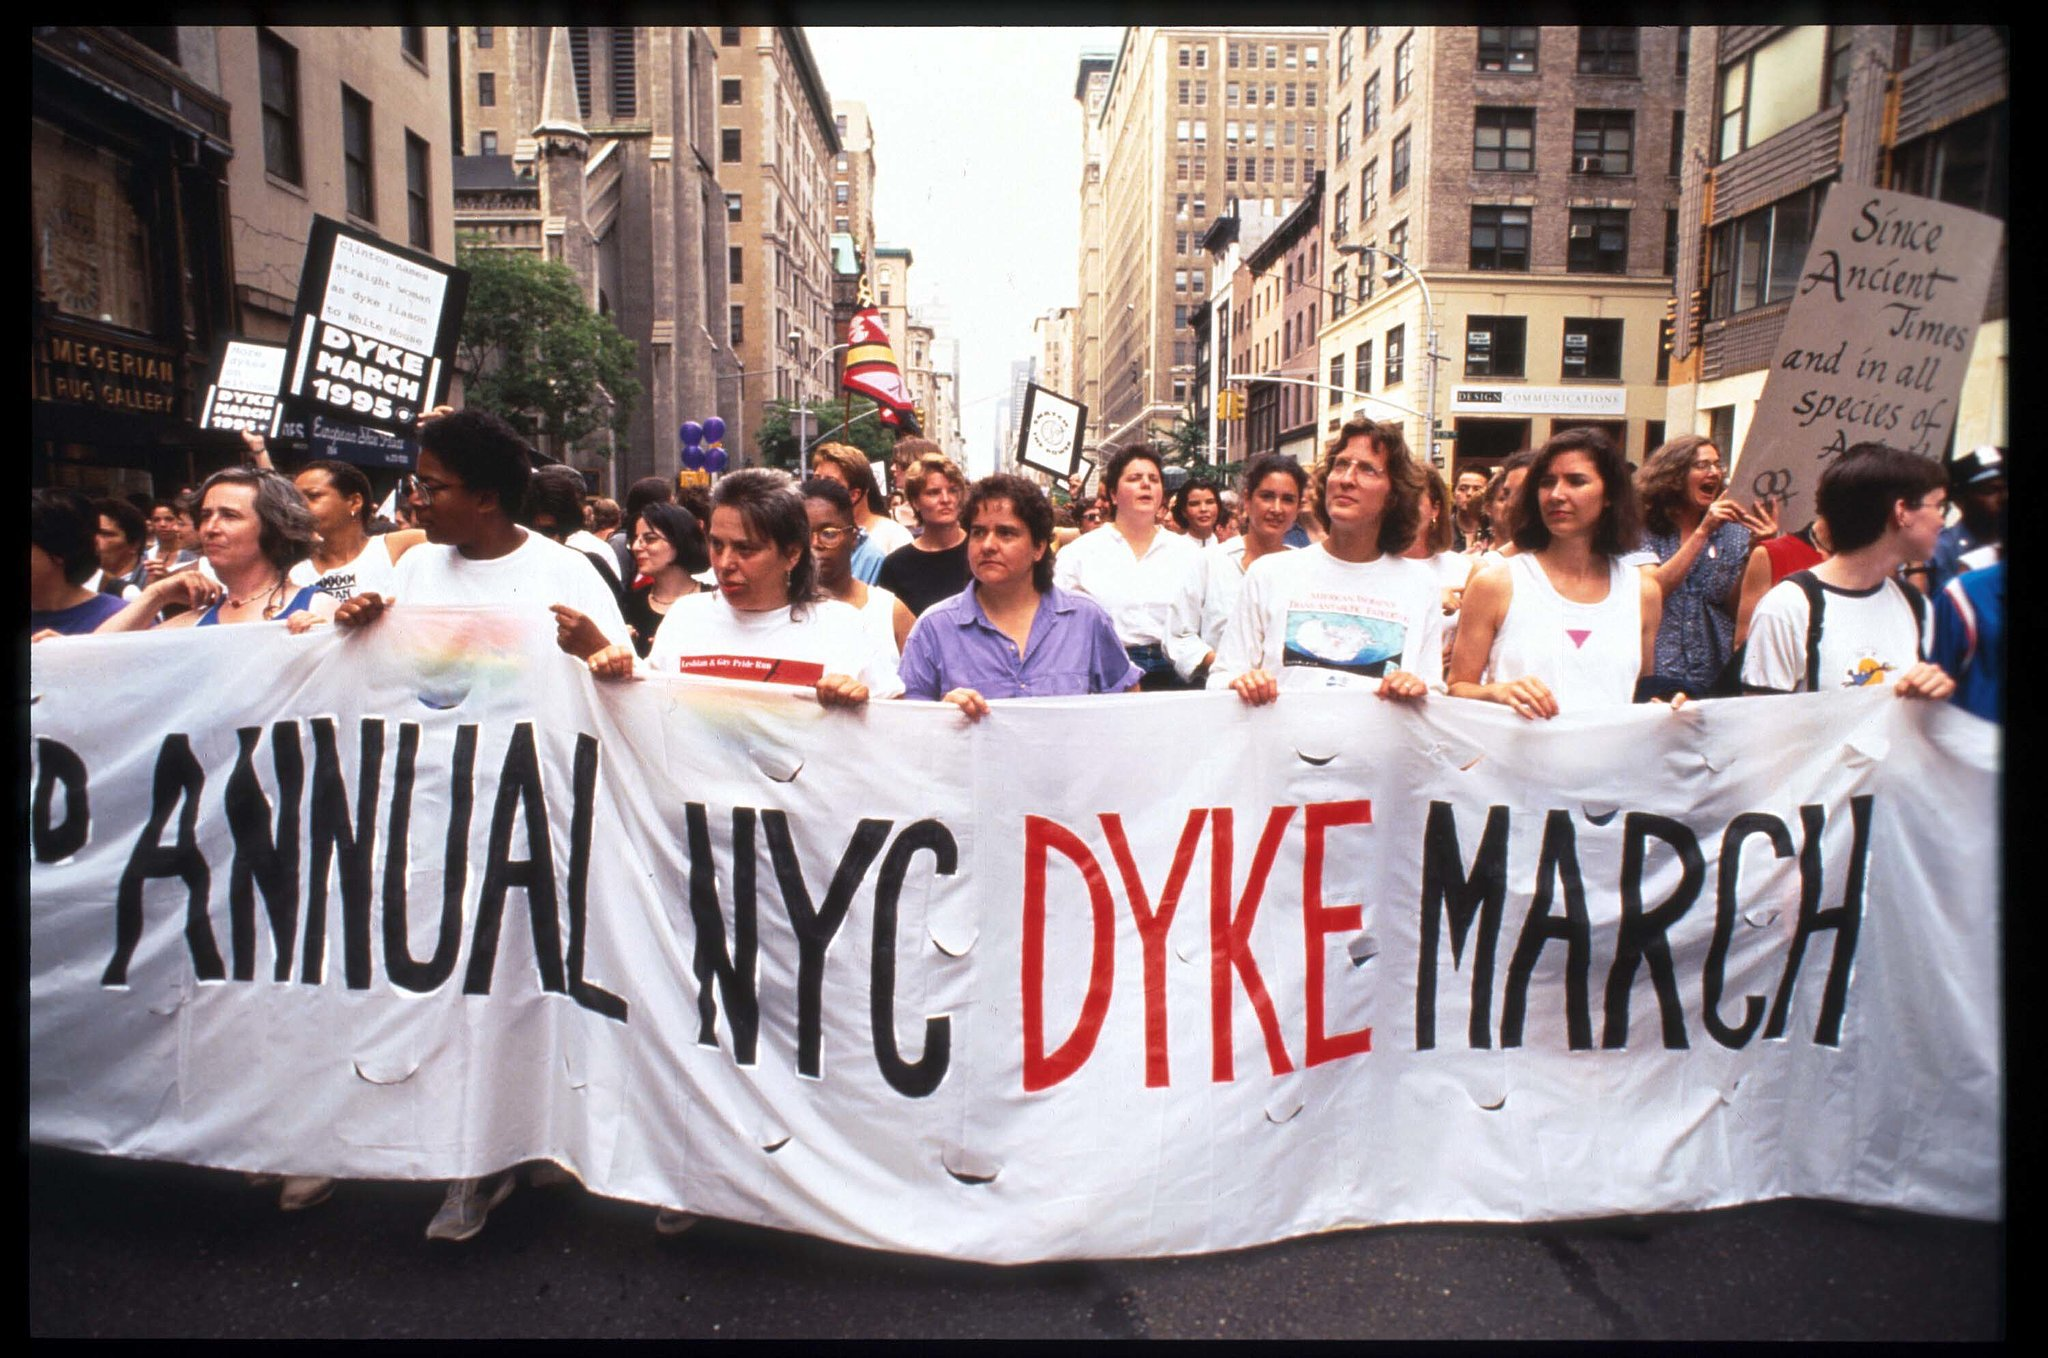 Lesbian Pride Parade in US, 1995